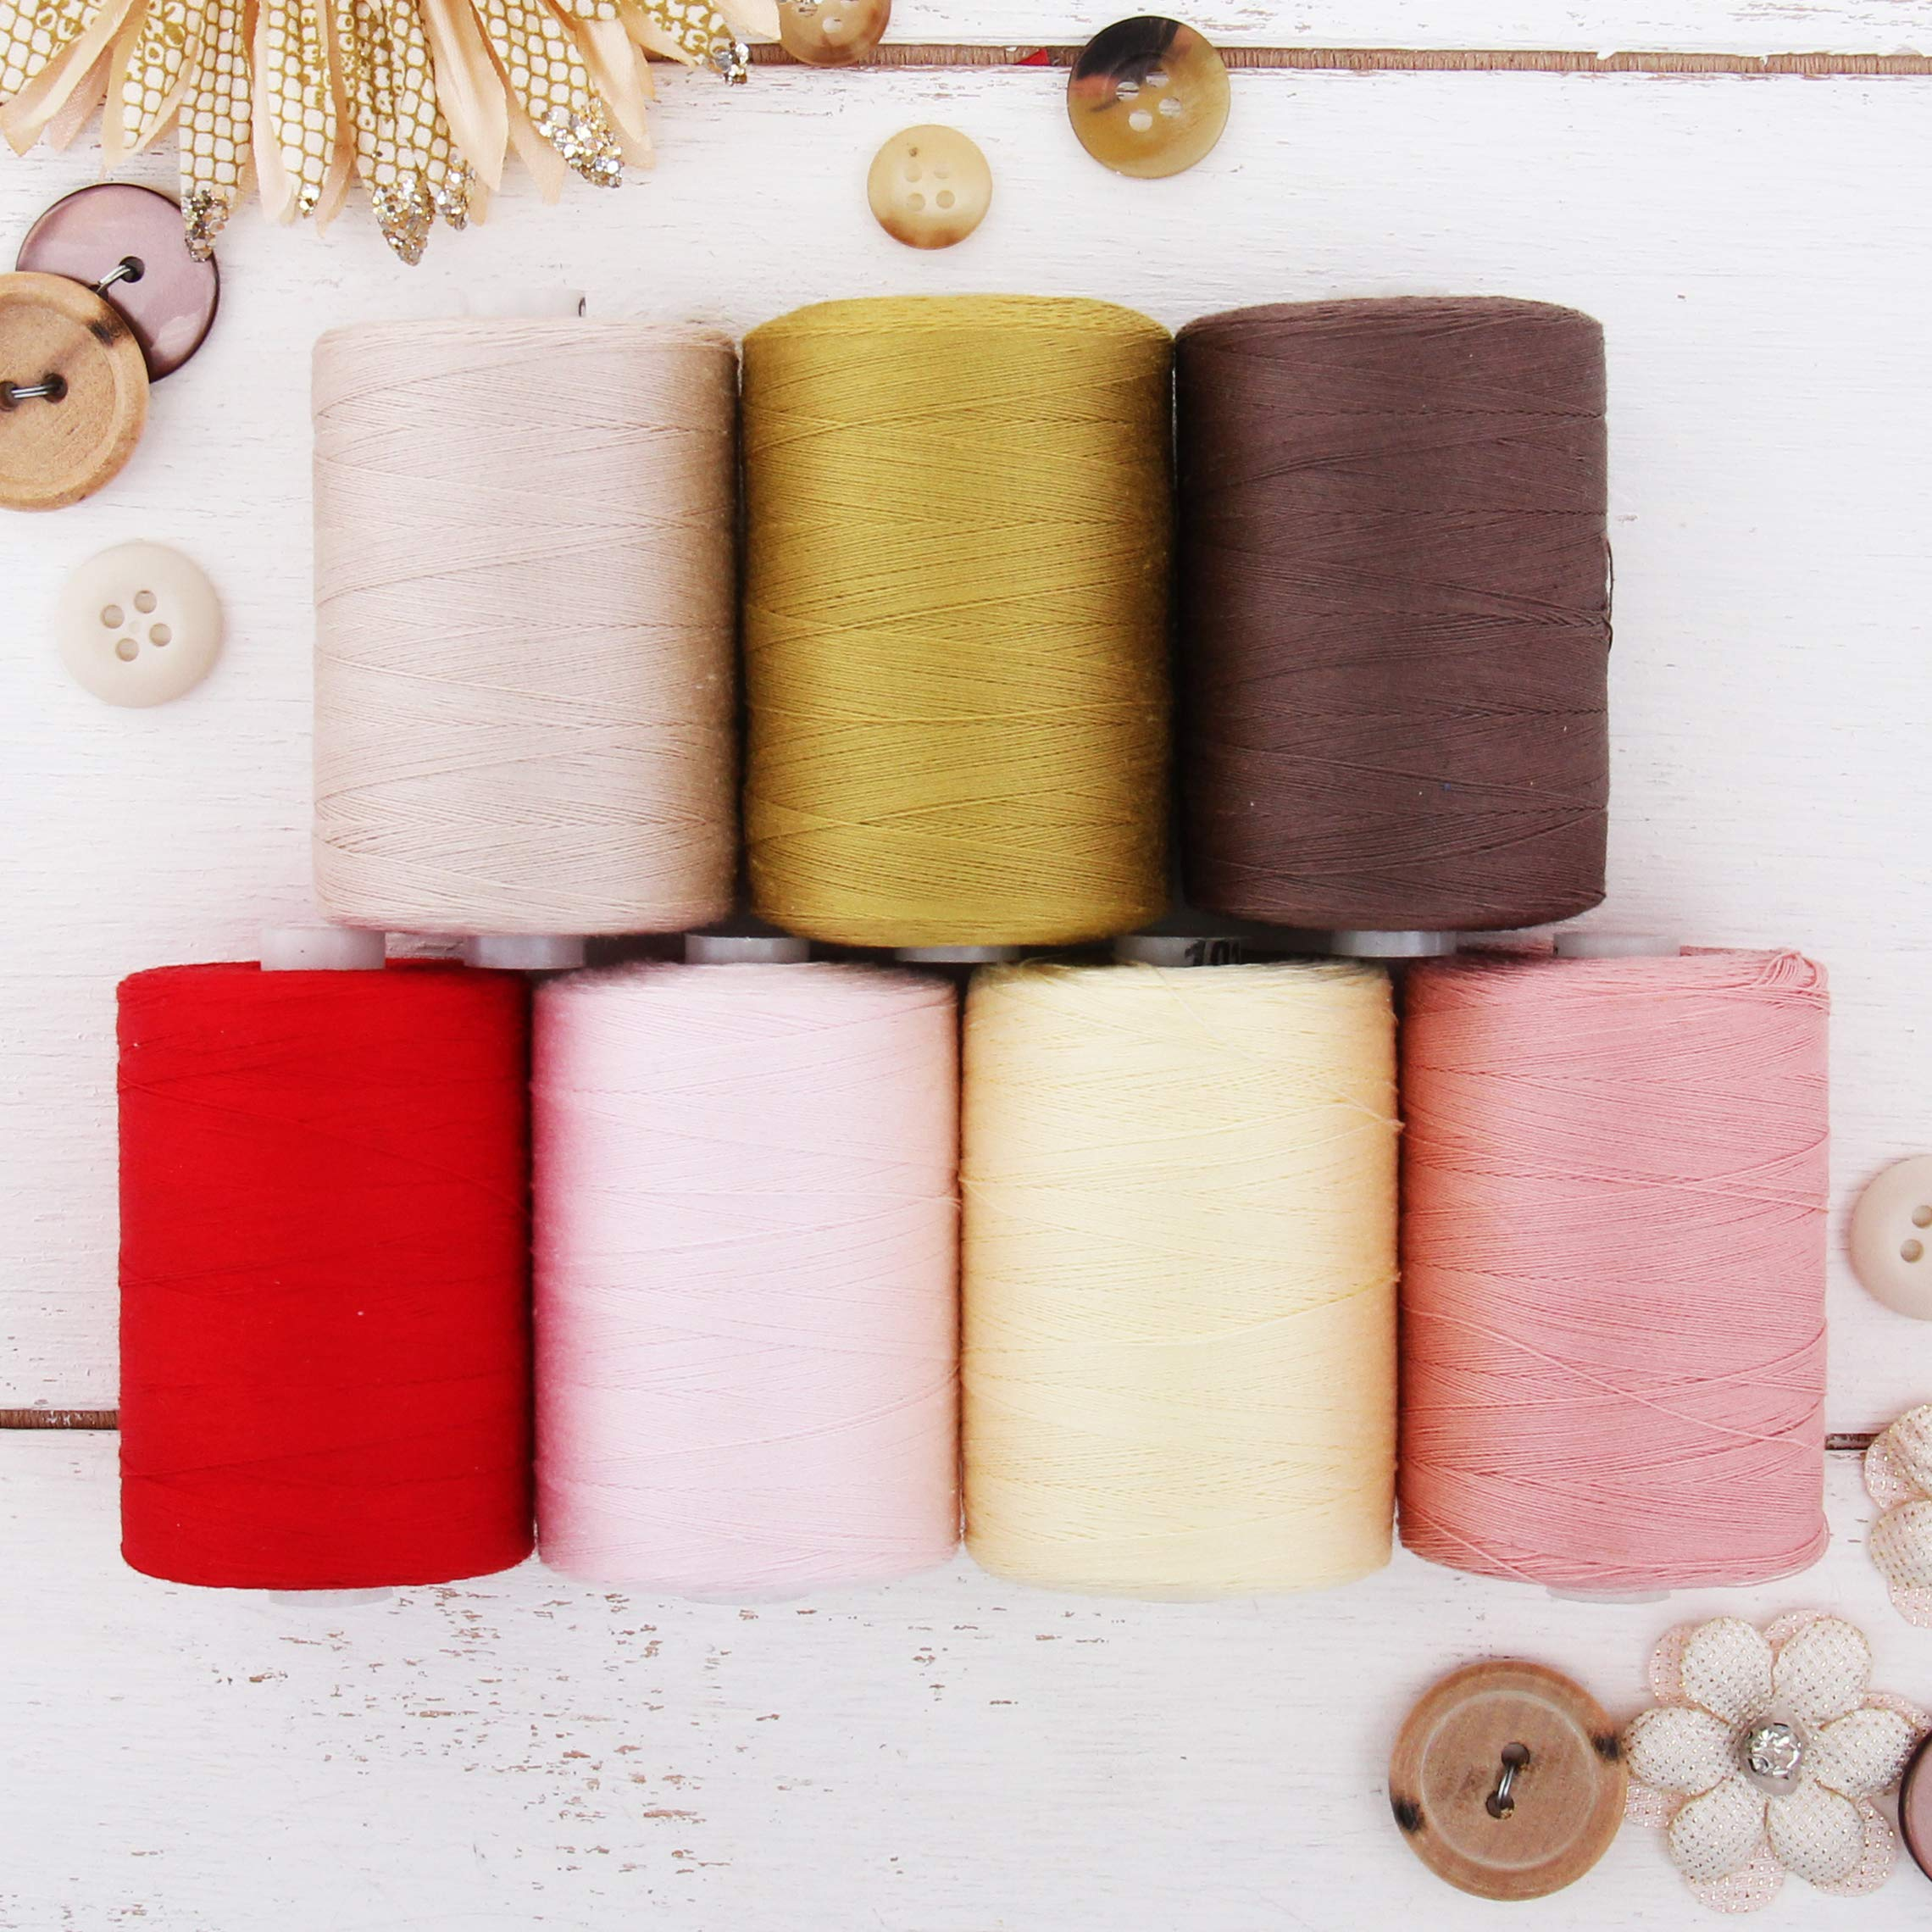 Threadart 100% Cotton Thread Set | 7 garden Color Spools | 1000M (1100 Yards) Spools | For Quilting & Sewing 50/3 Weight | Long Staple & Low Lint | Over 20 Other Sets Available by Threadart